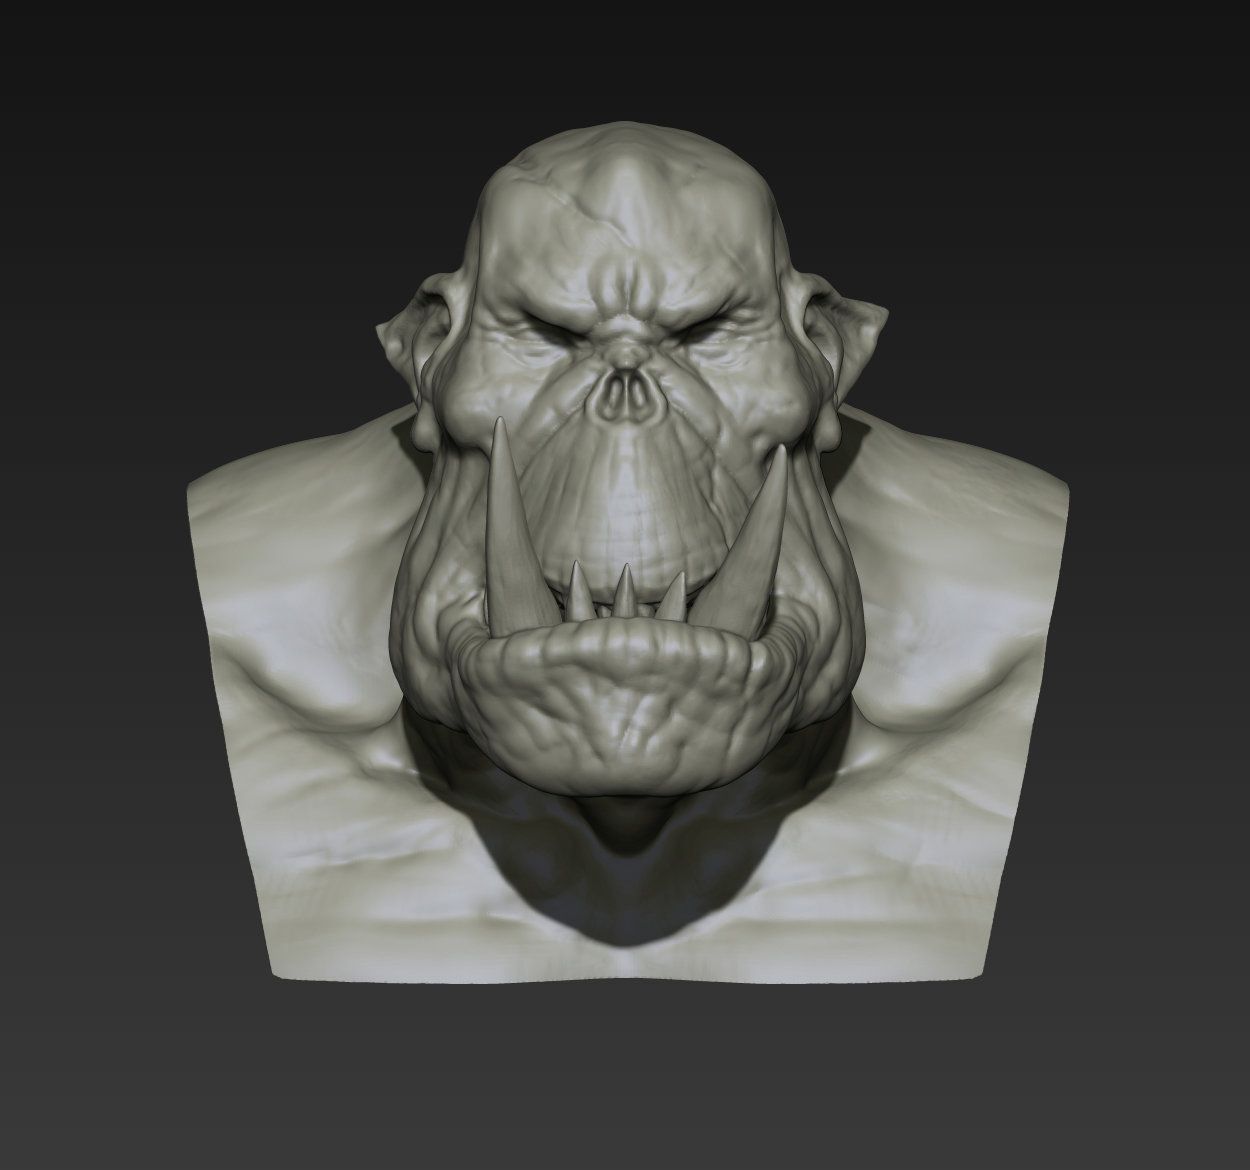 Toby hynes orc bust sketch 02